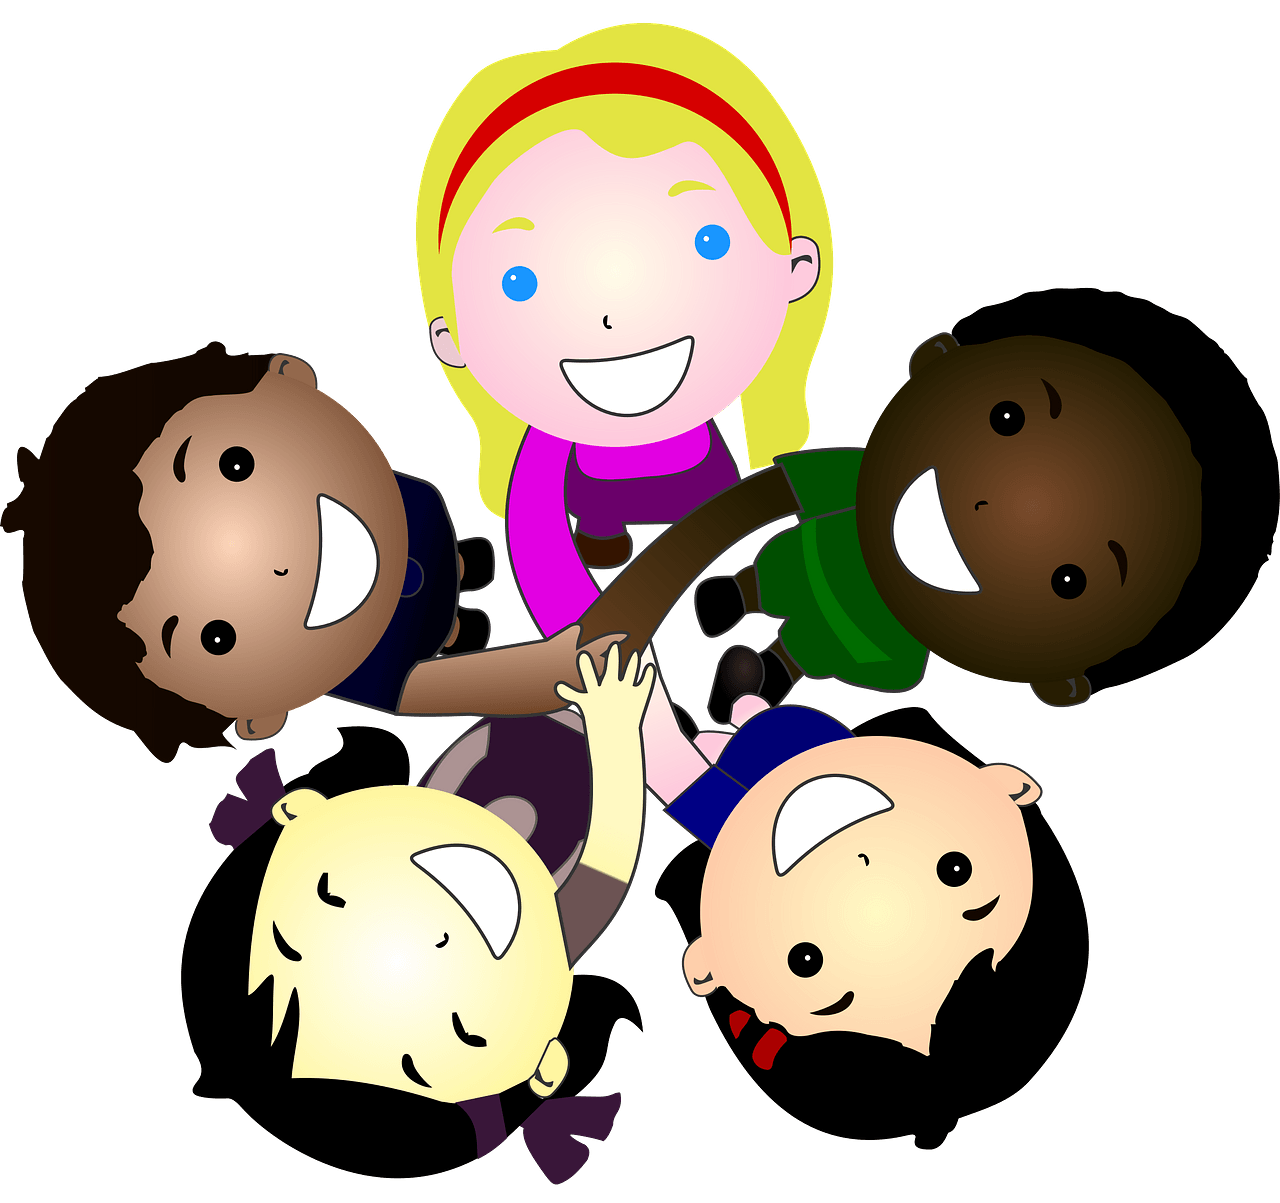 Five kids joining hands together clipart. Free download.